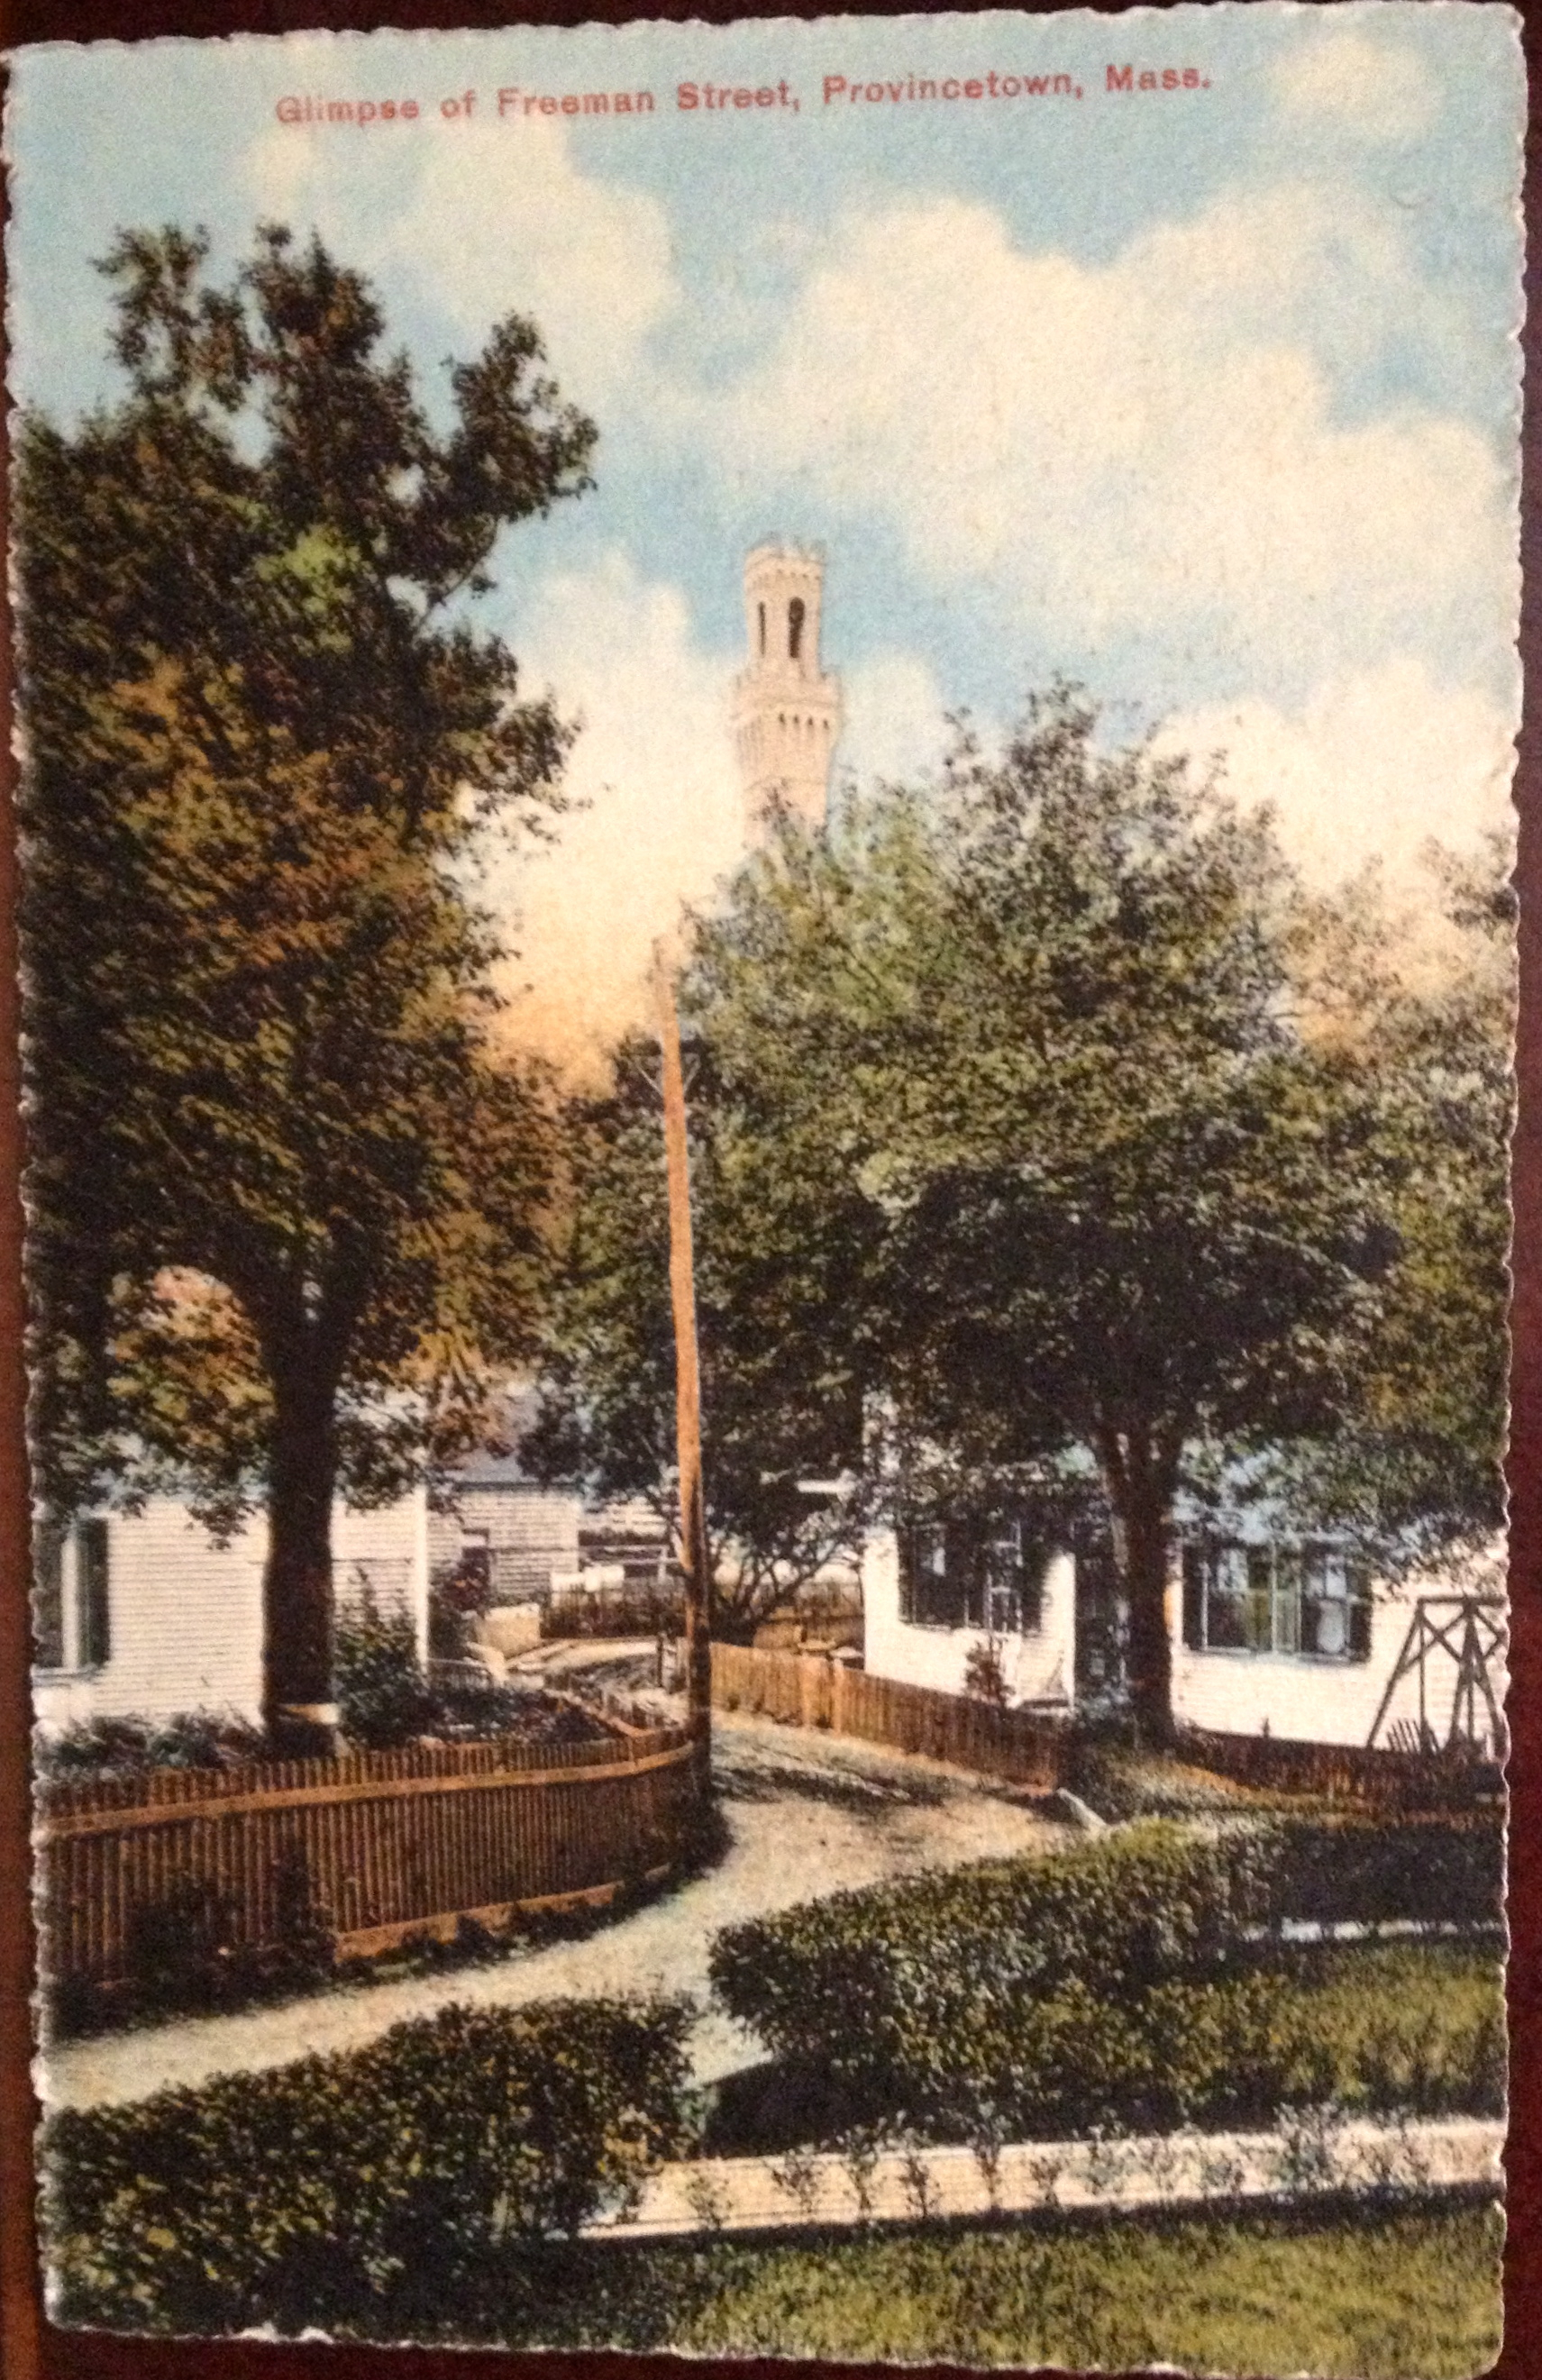 Freeman Street, Provincetown with the Pilgrim Monument in the background. Postcard circa 1900.